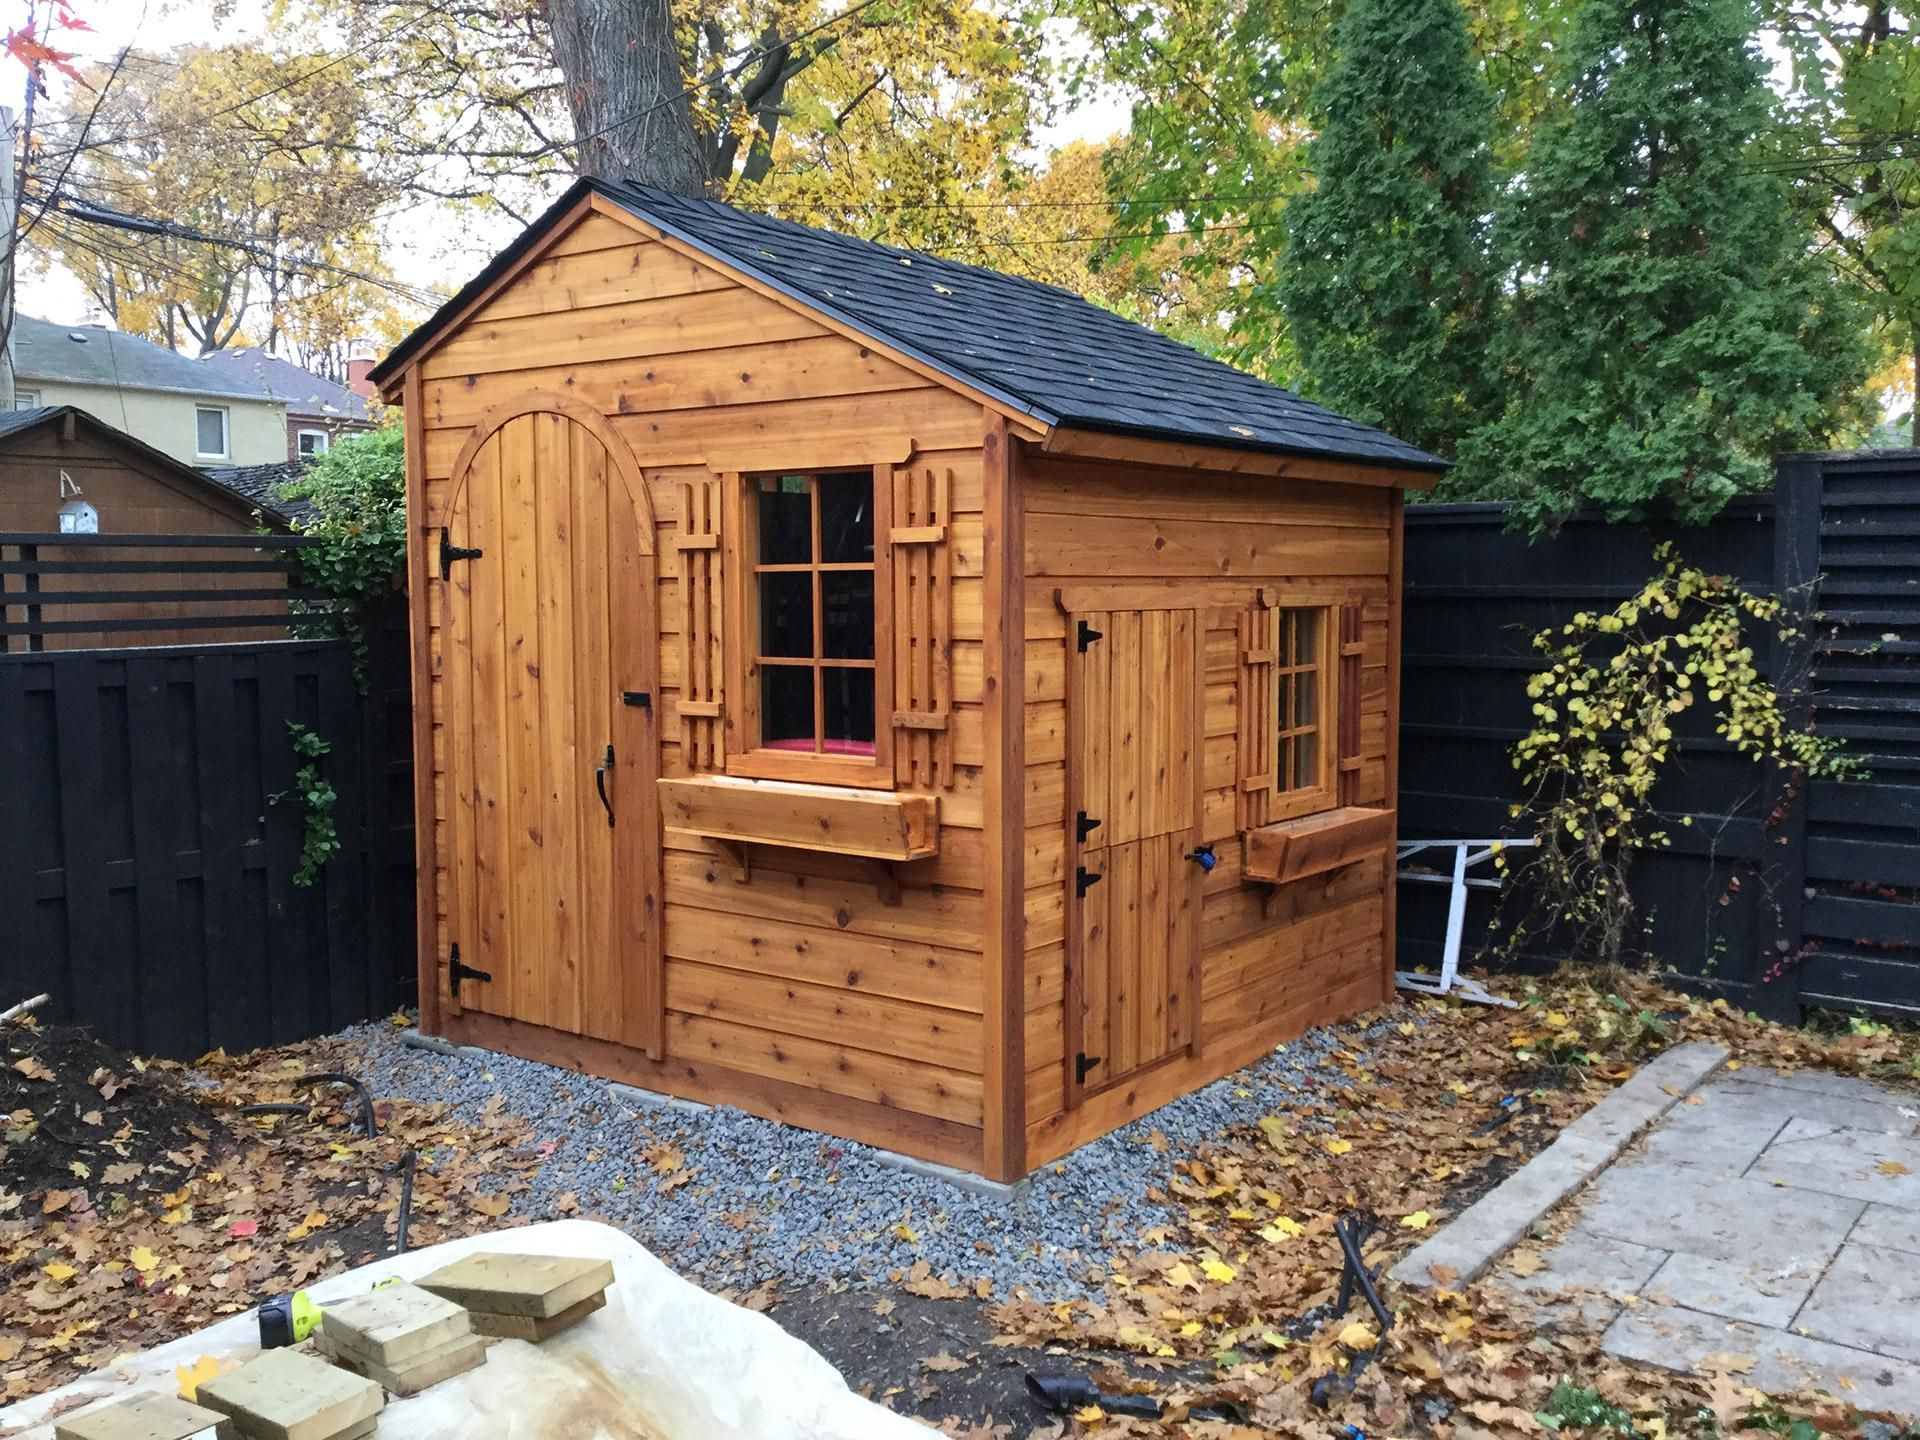 you style equipment a and pool adding sheds option perfect to your woodworks shed area entertain whether need backyard is genesis products while cabana an storage for or cabanas